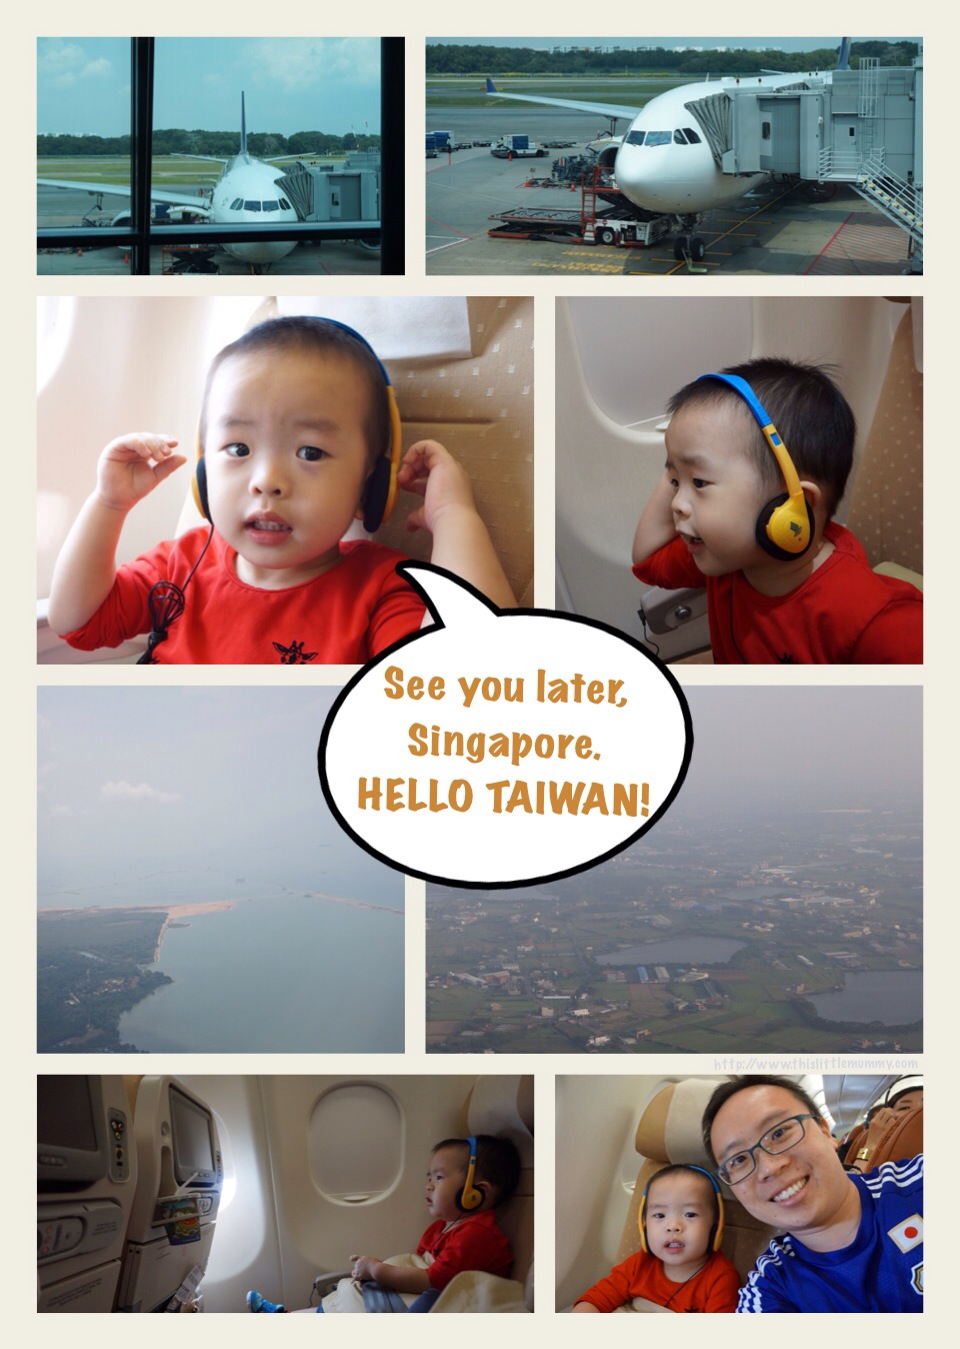 See you later, Singapore. Hello Taiwan!